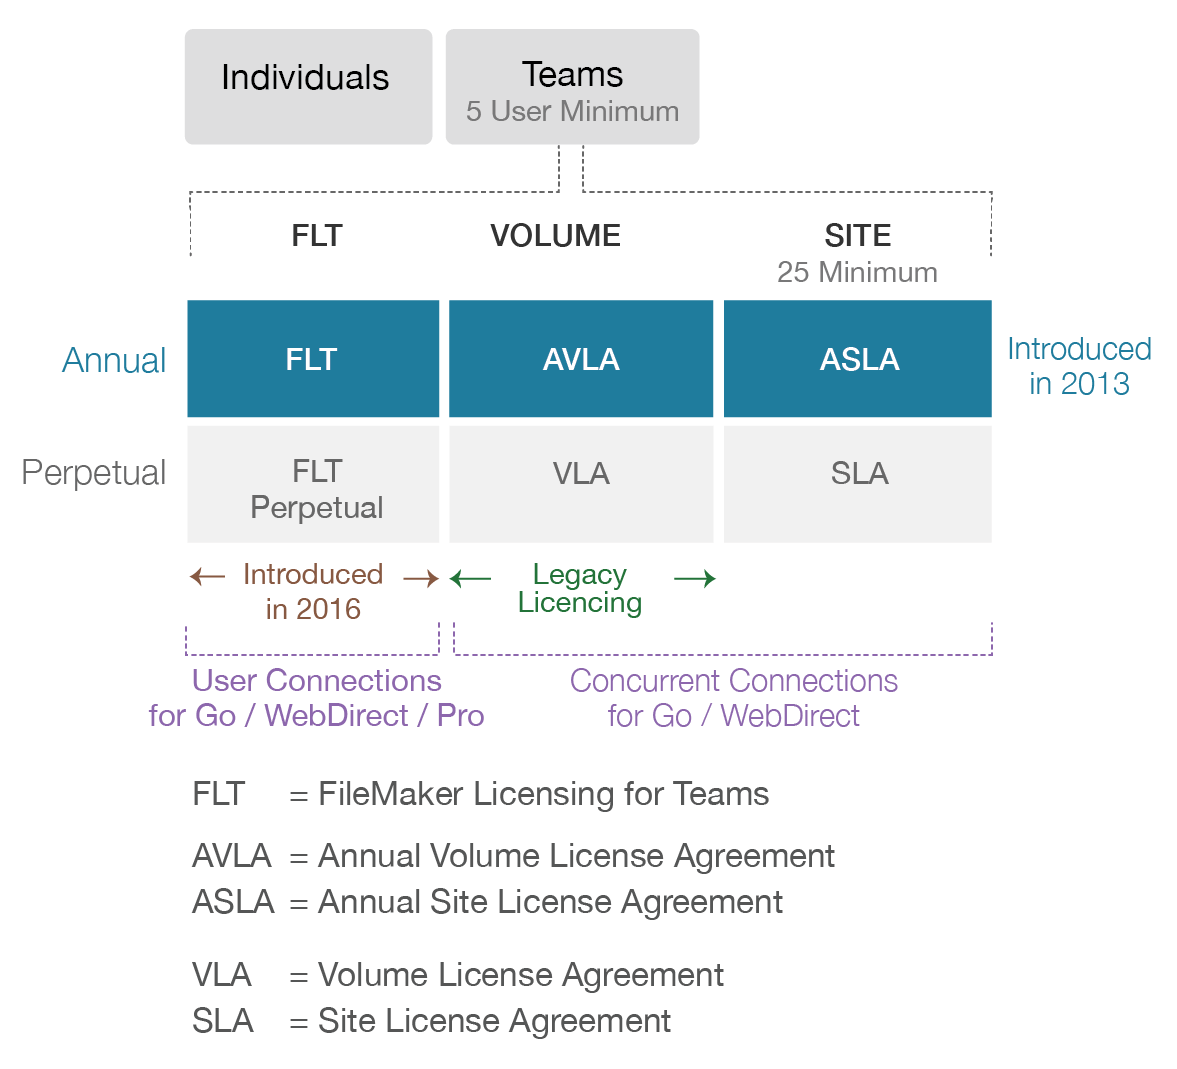 FileMaker licensing for teams with concurrent connections